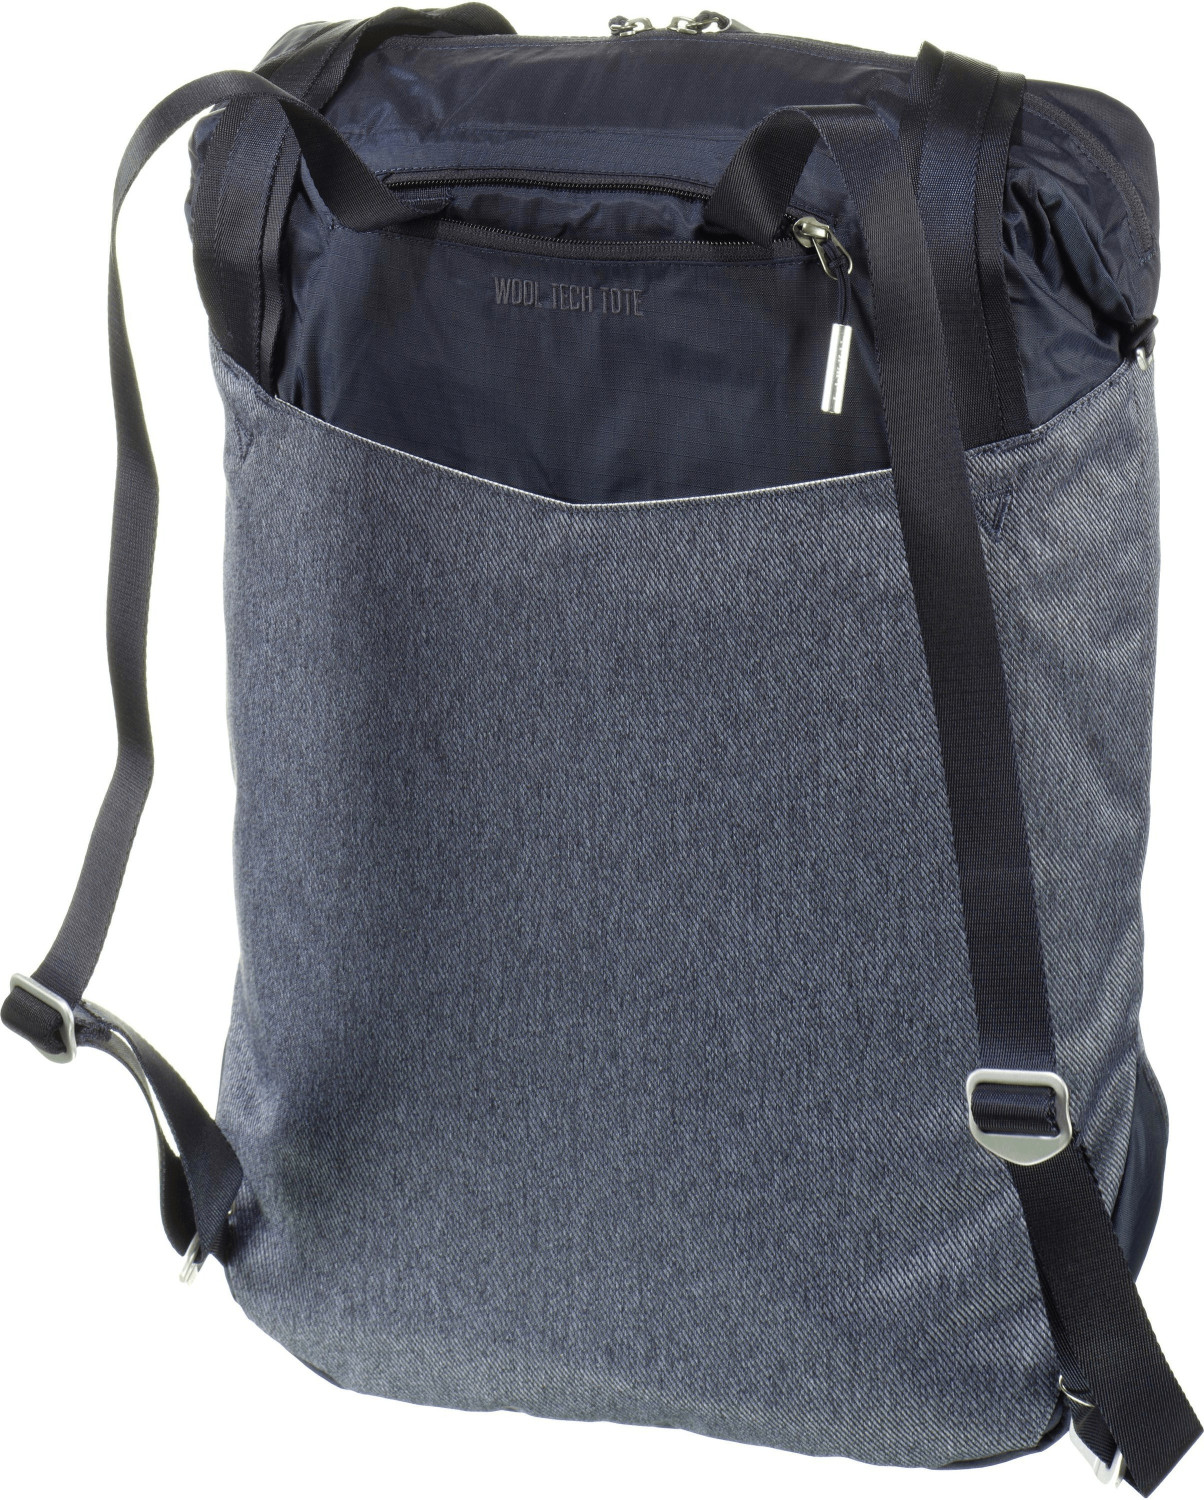 Jack Wolfskin Wool Tech Tote dark sky